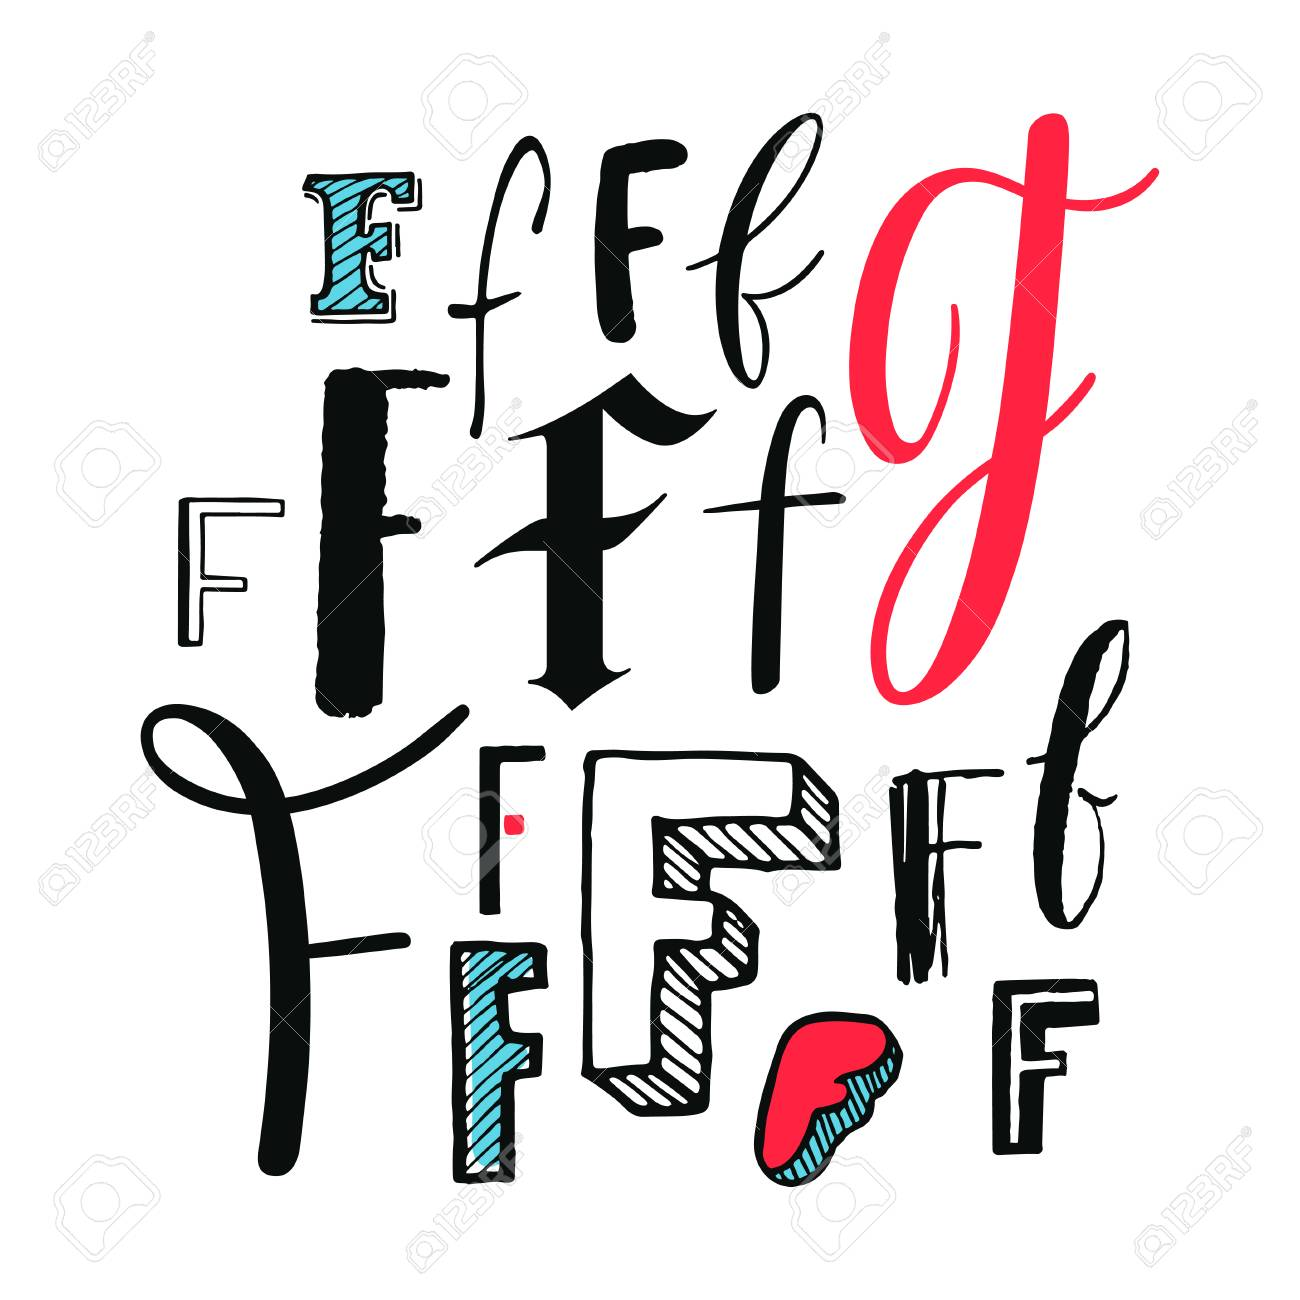 Letters F Set Different Styles Hand Drawn Illustration Royalty